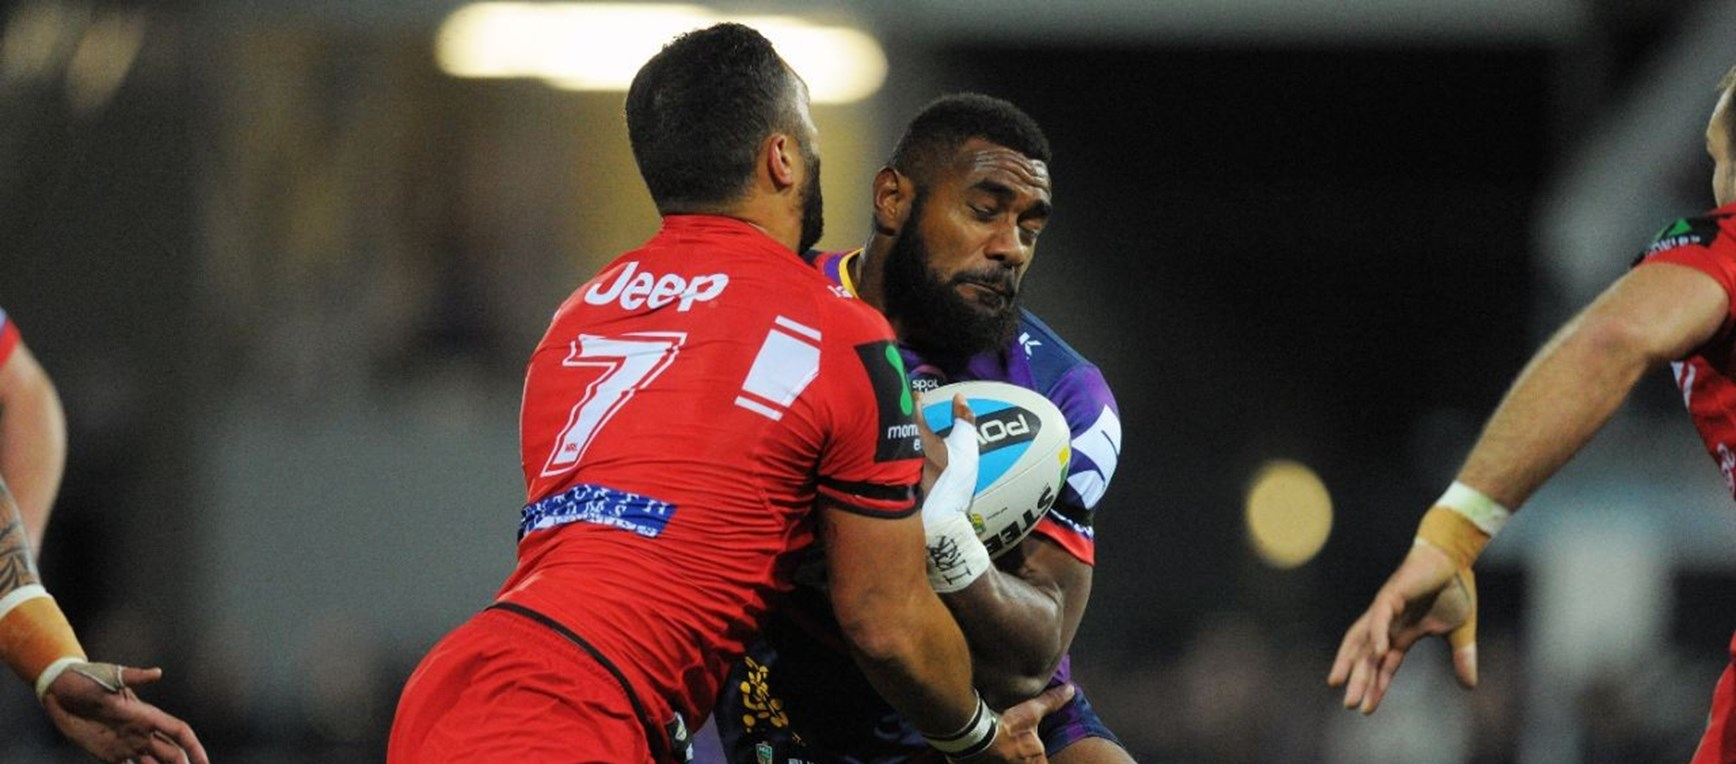 Gallery: Round 20 v Melbourne Storm